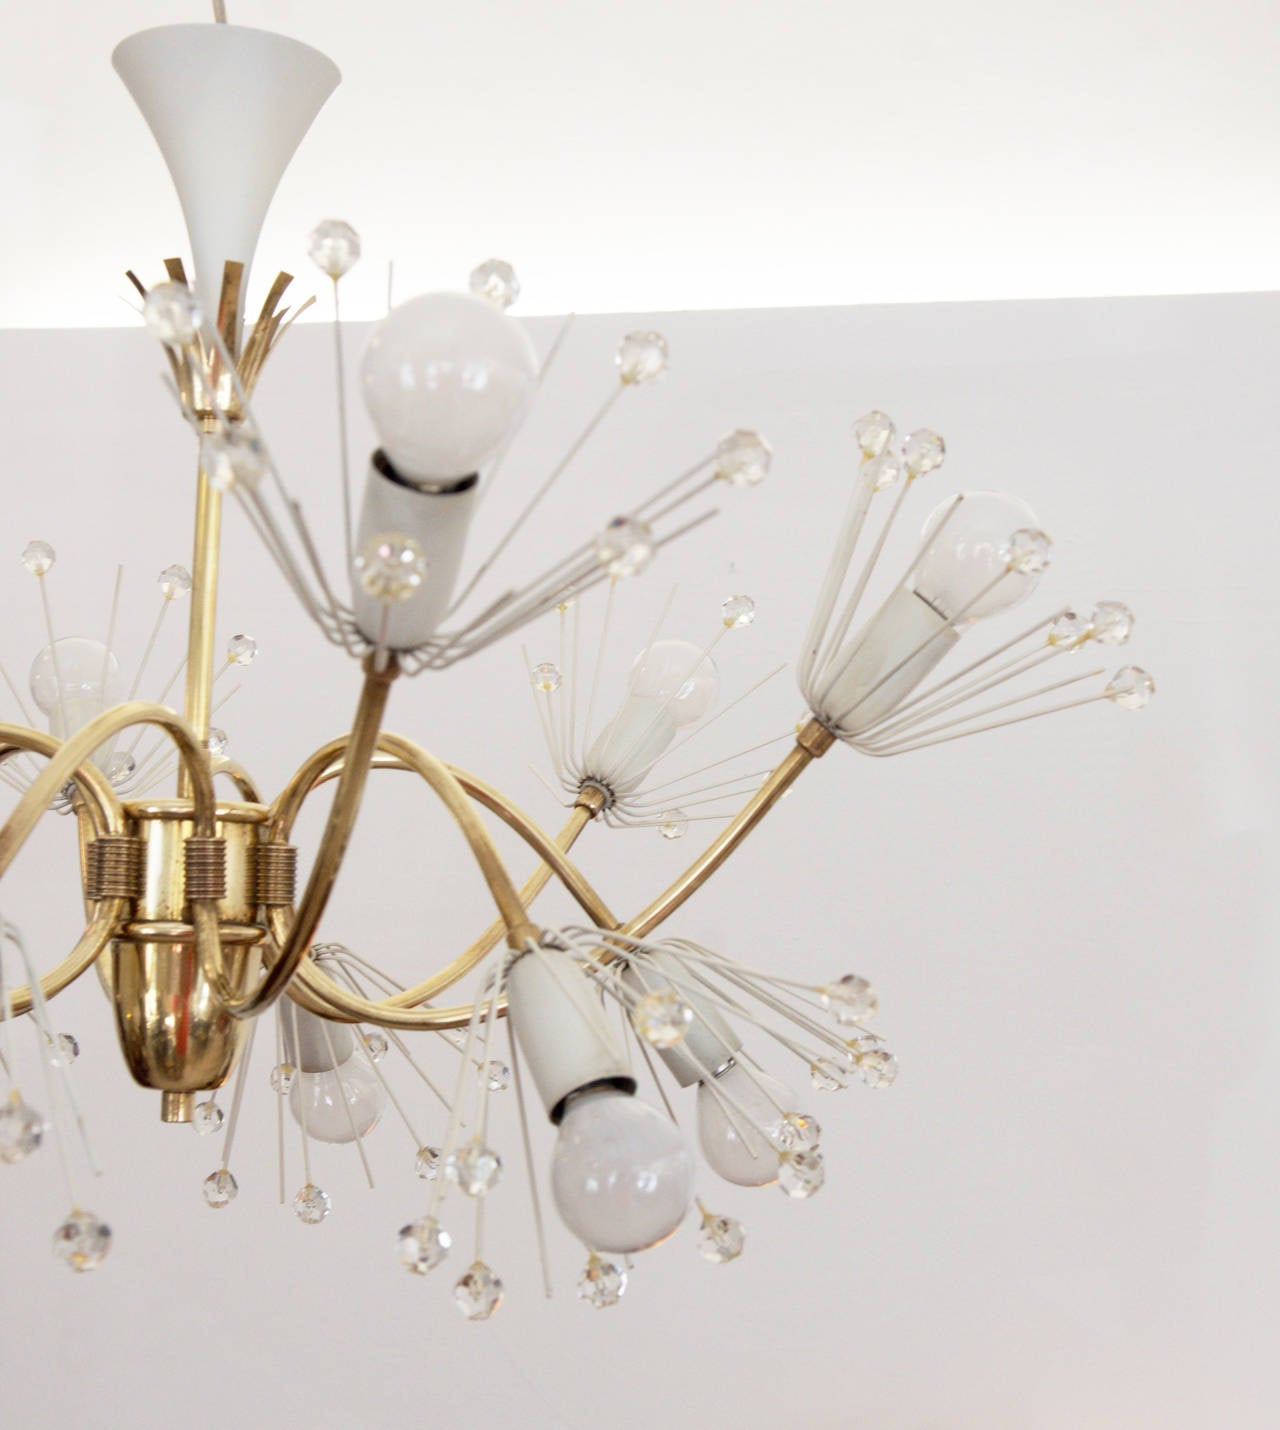 This ceiling lamp called Snowflakes was designed by the designer Emil Stejnar in the 1950s. 